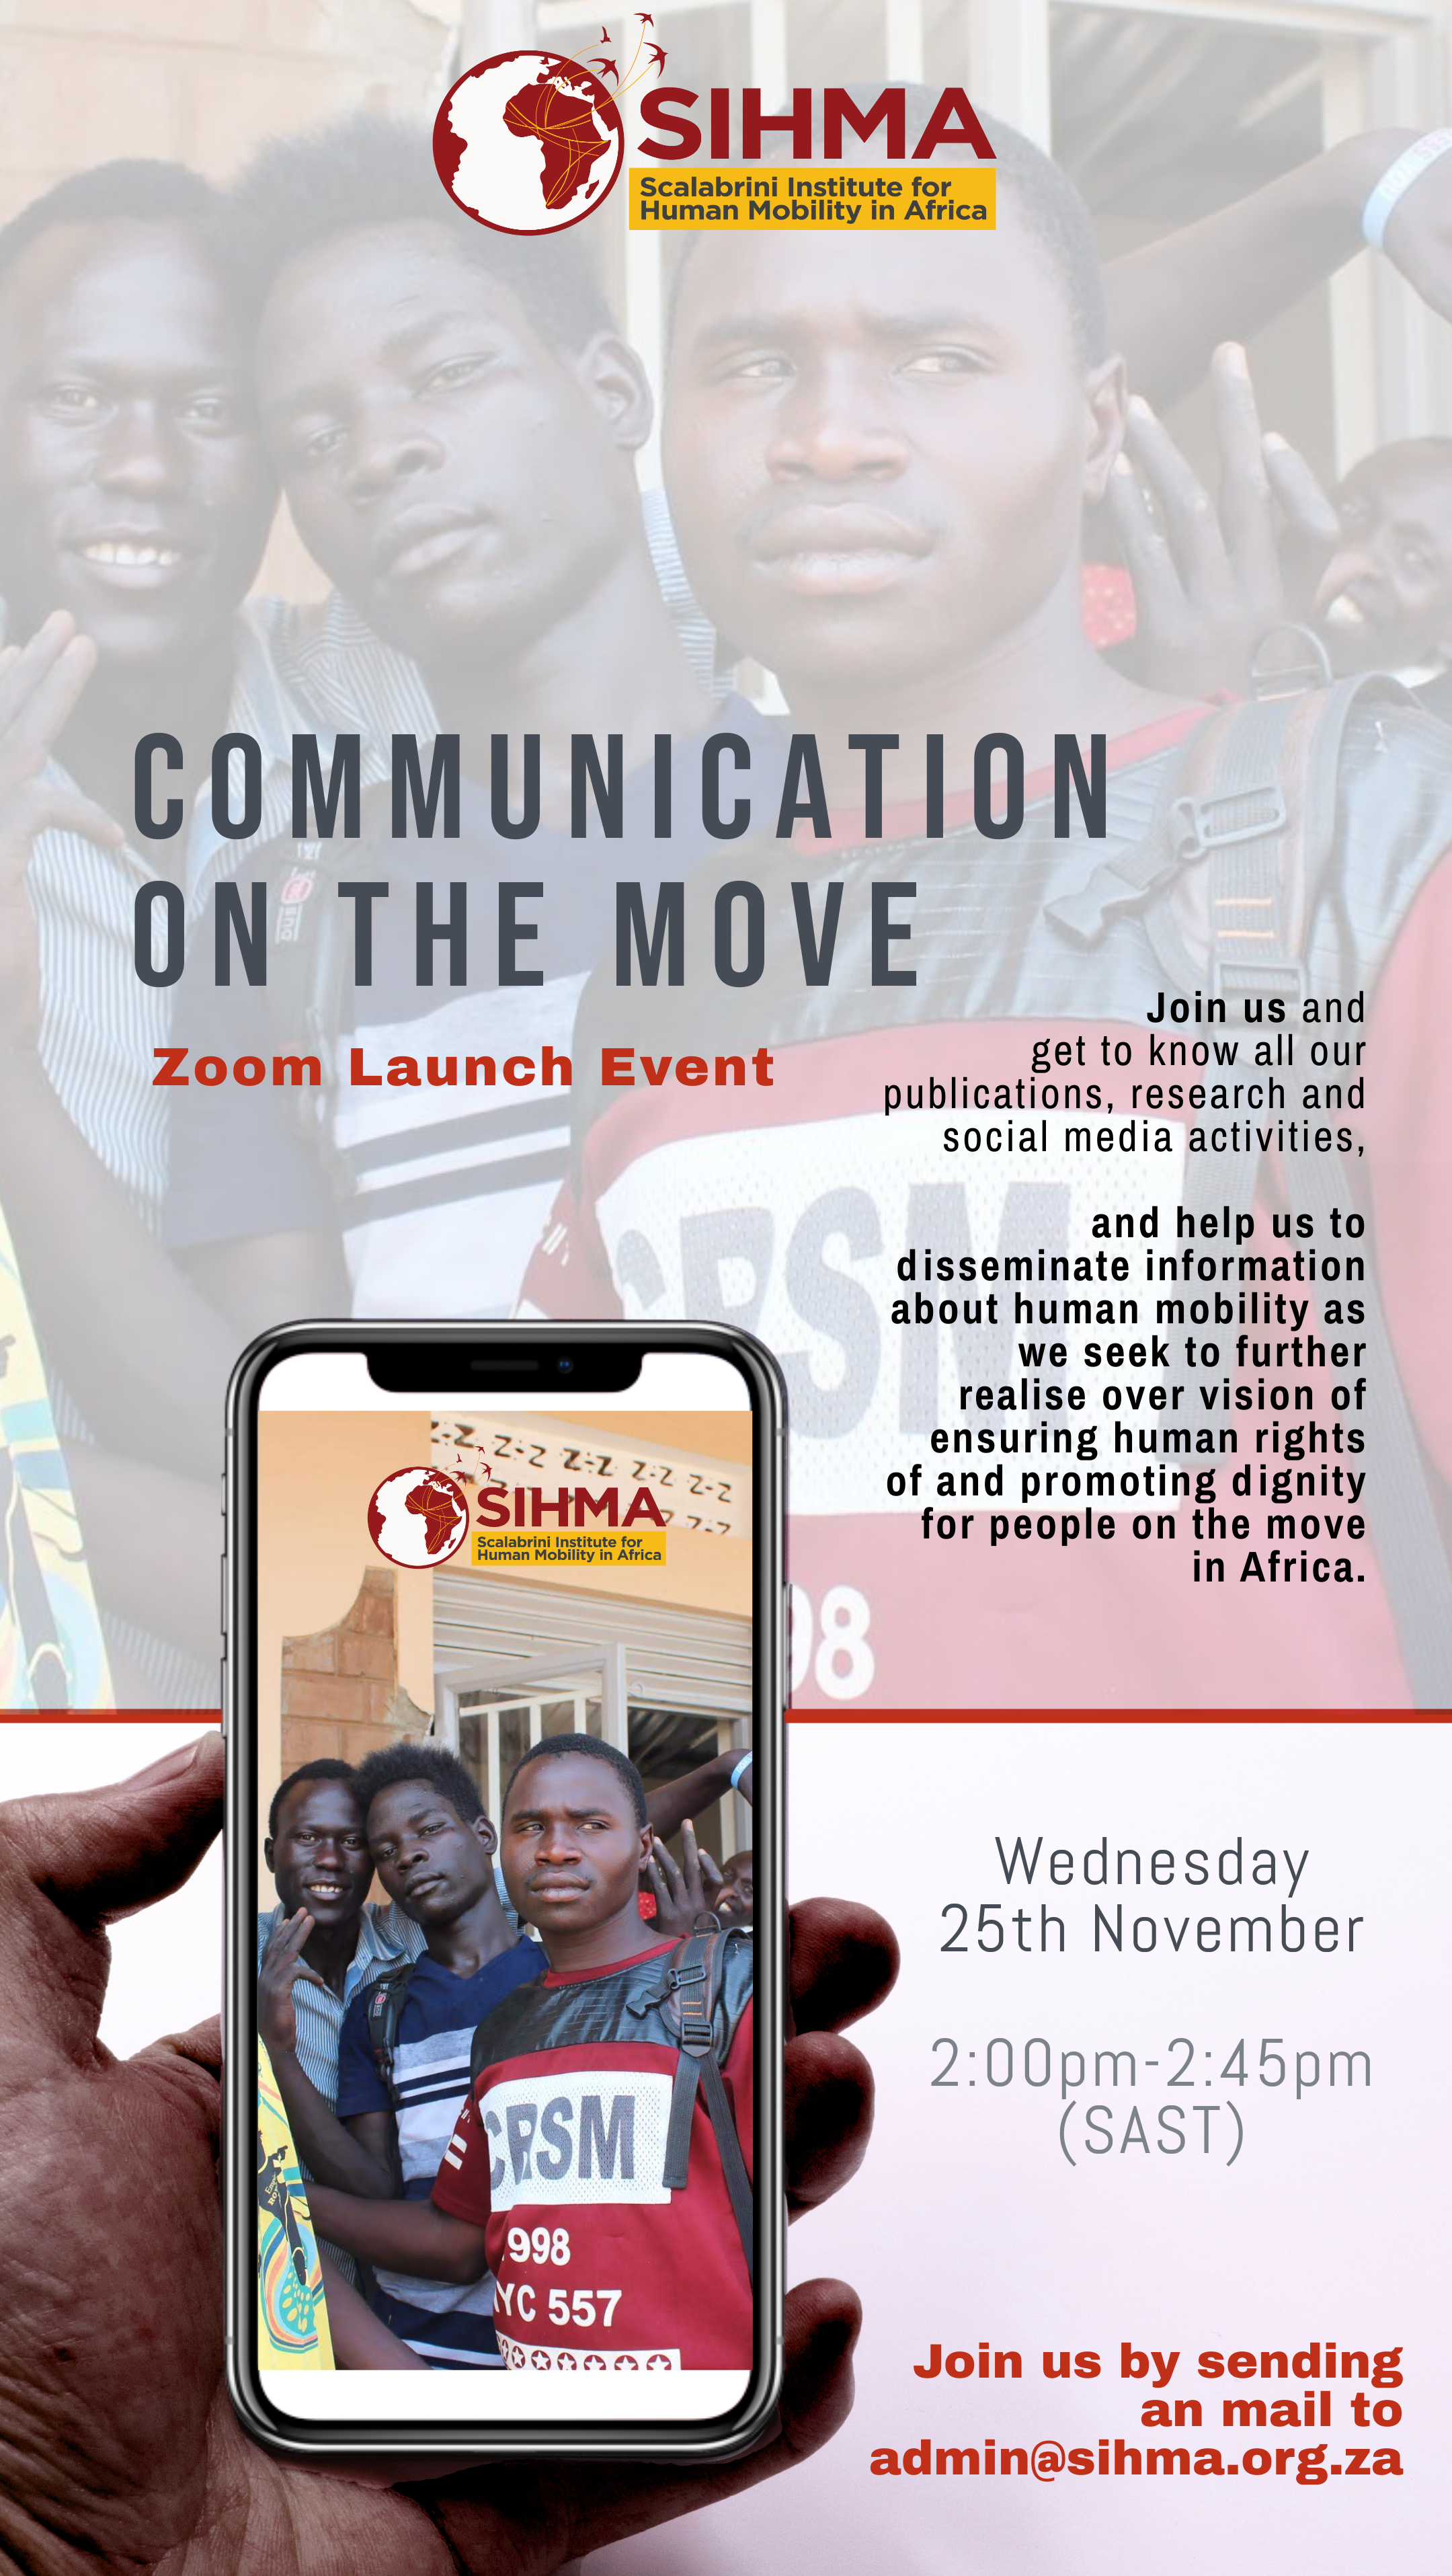 https://sihma.org.za/photos/shares/SIHMA Event Invitation.png